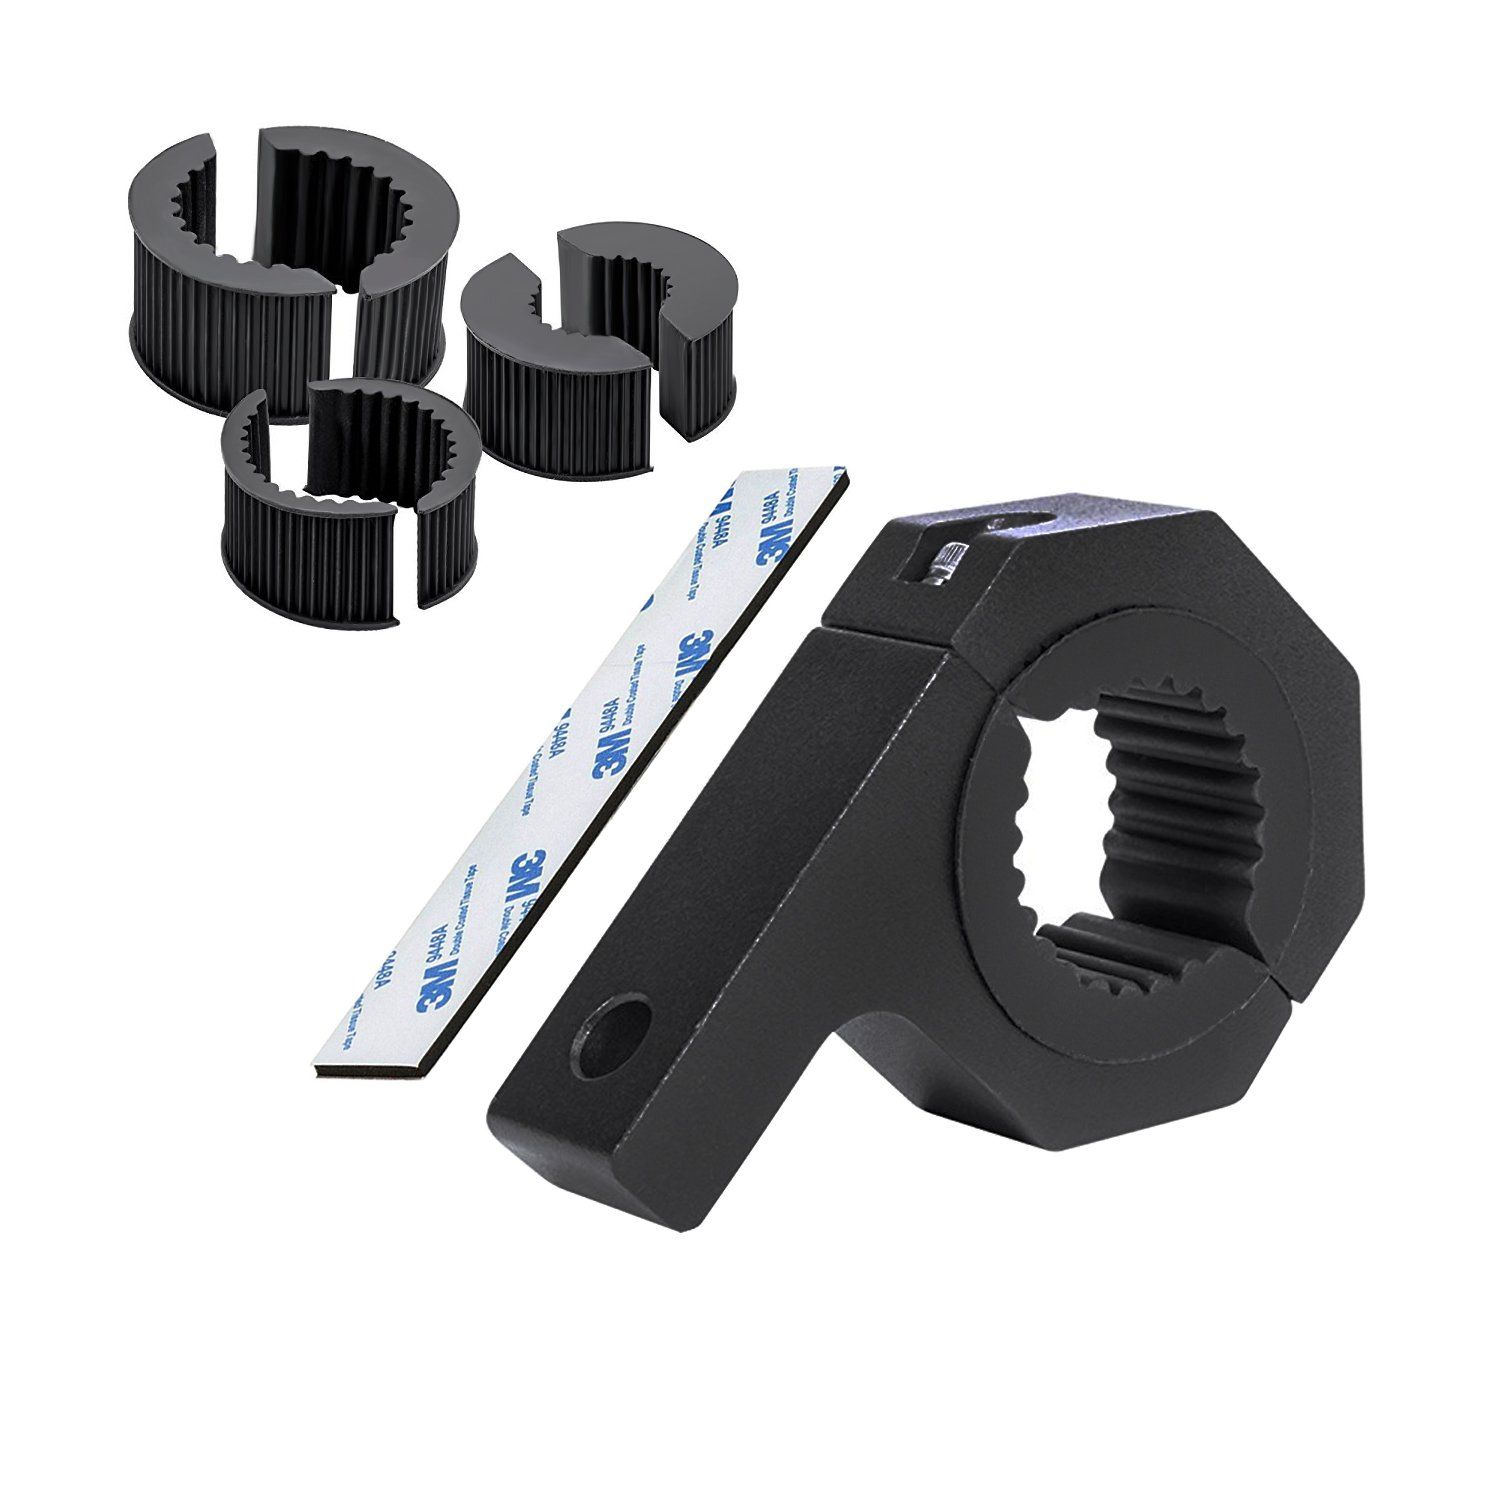 Clamps Mounts for Mounting LED Light Bars, Mounting Brackets for Roof Roll Cage Tube, 1'/ 1.5'/ 1.75'/ 2' Clamp Bar (2pcs) 1/ 1.5/ 1.75/ 2 Clamp Bar (2pcs) Vc